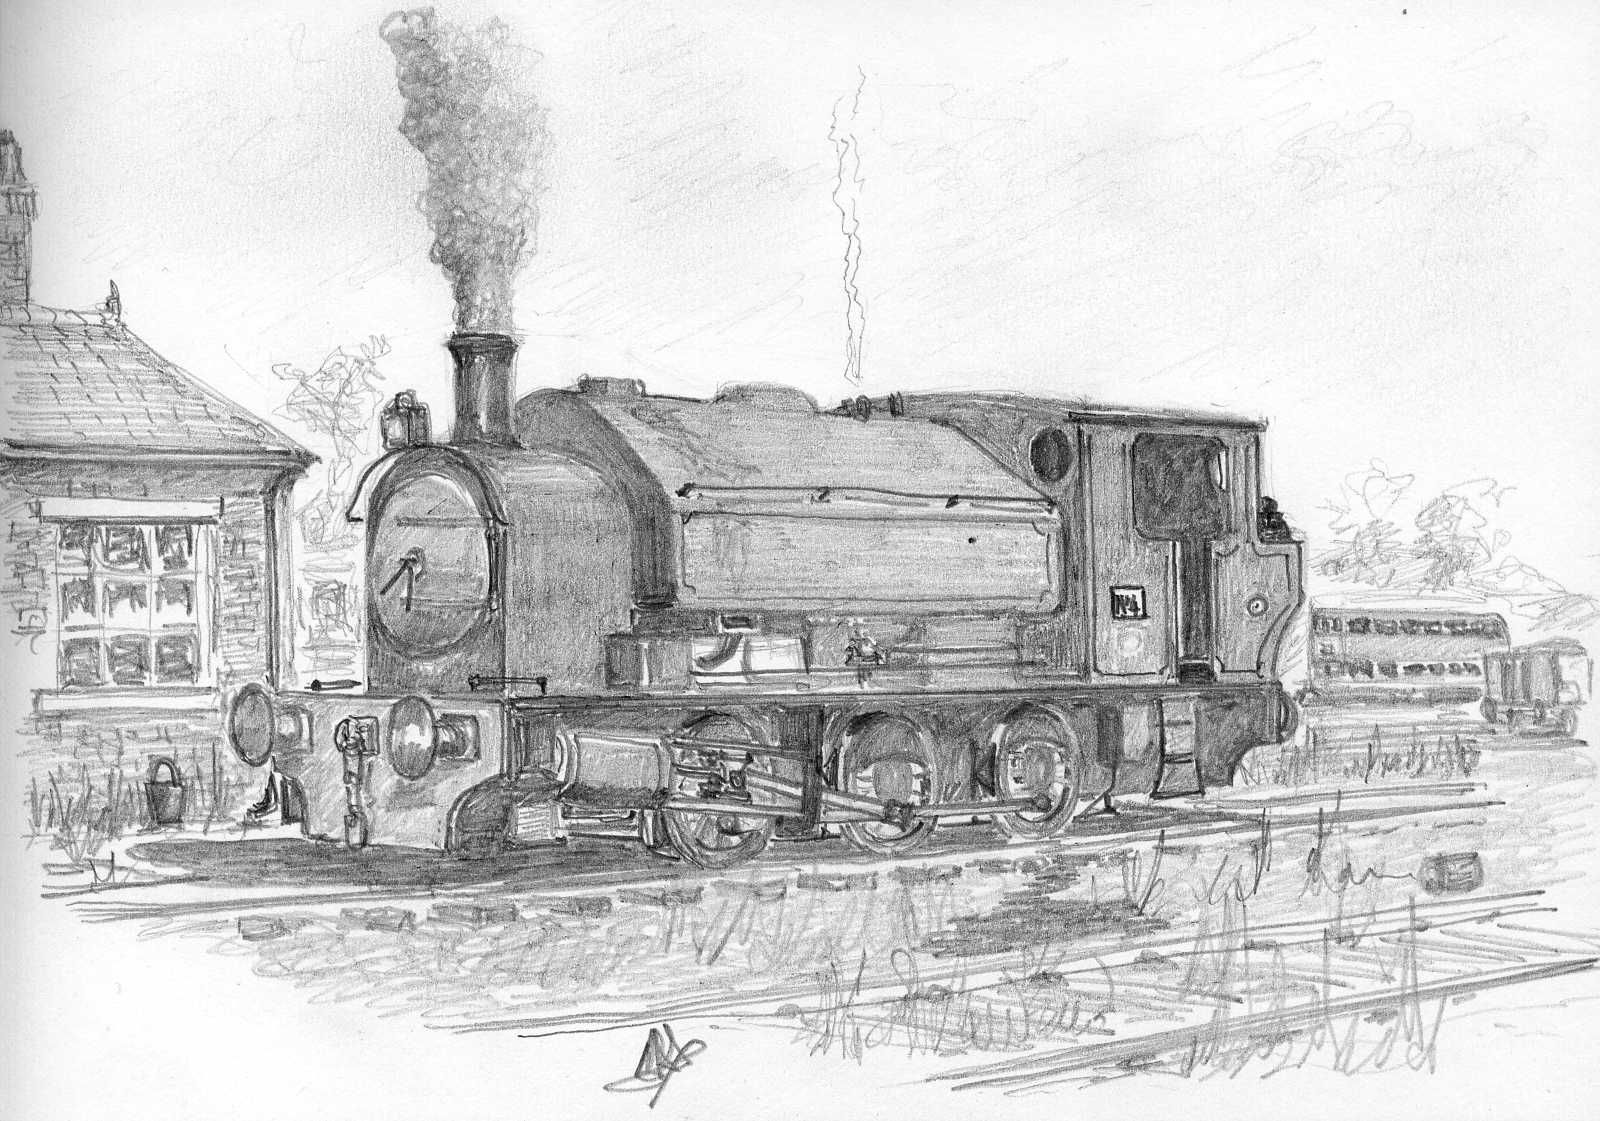 steam engine drawing quotsteam locomotive black and white pen ink drawingquot poster drawing steam engine